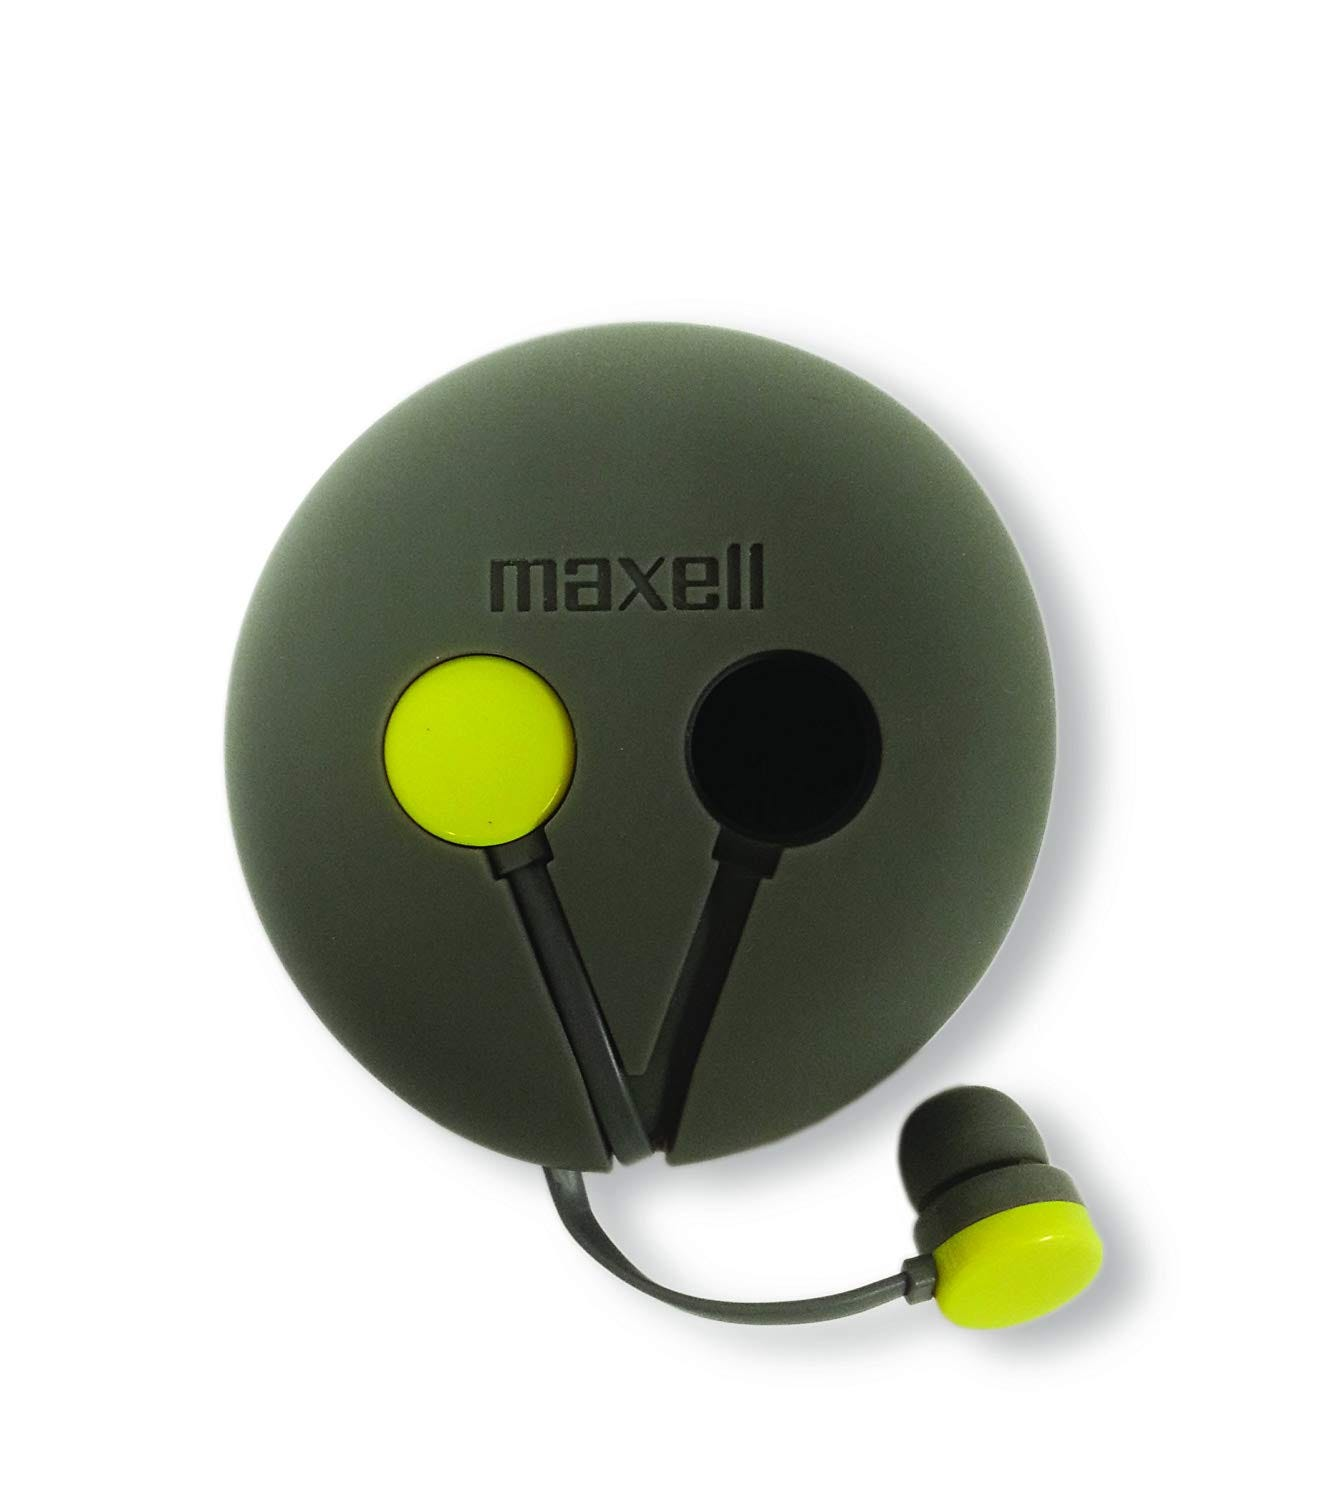 You'll find dozens of earbuds at your local dollar store but the Maxell Wrap'd were one of the best tested.